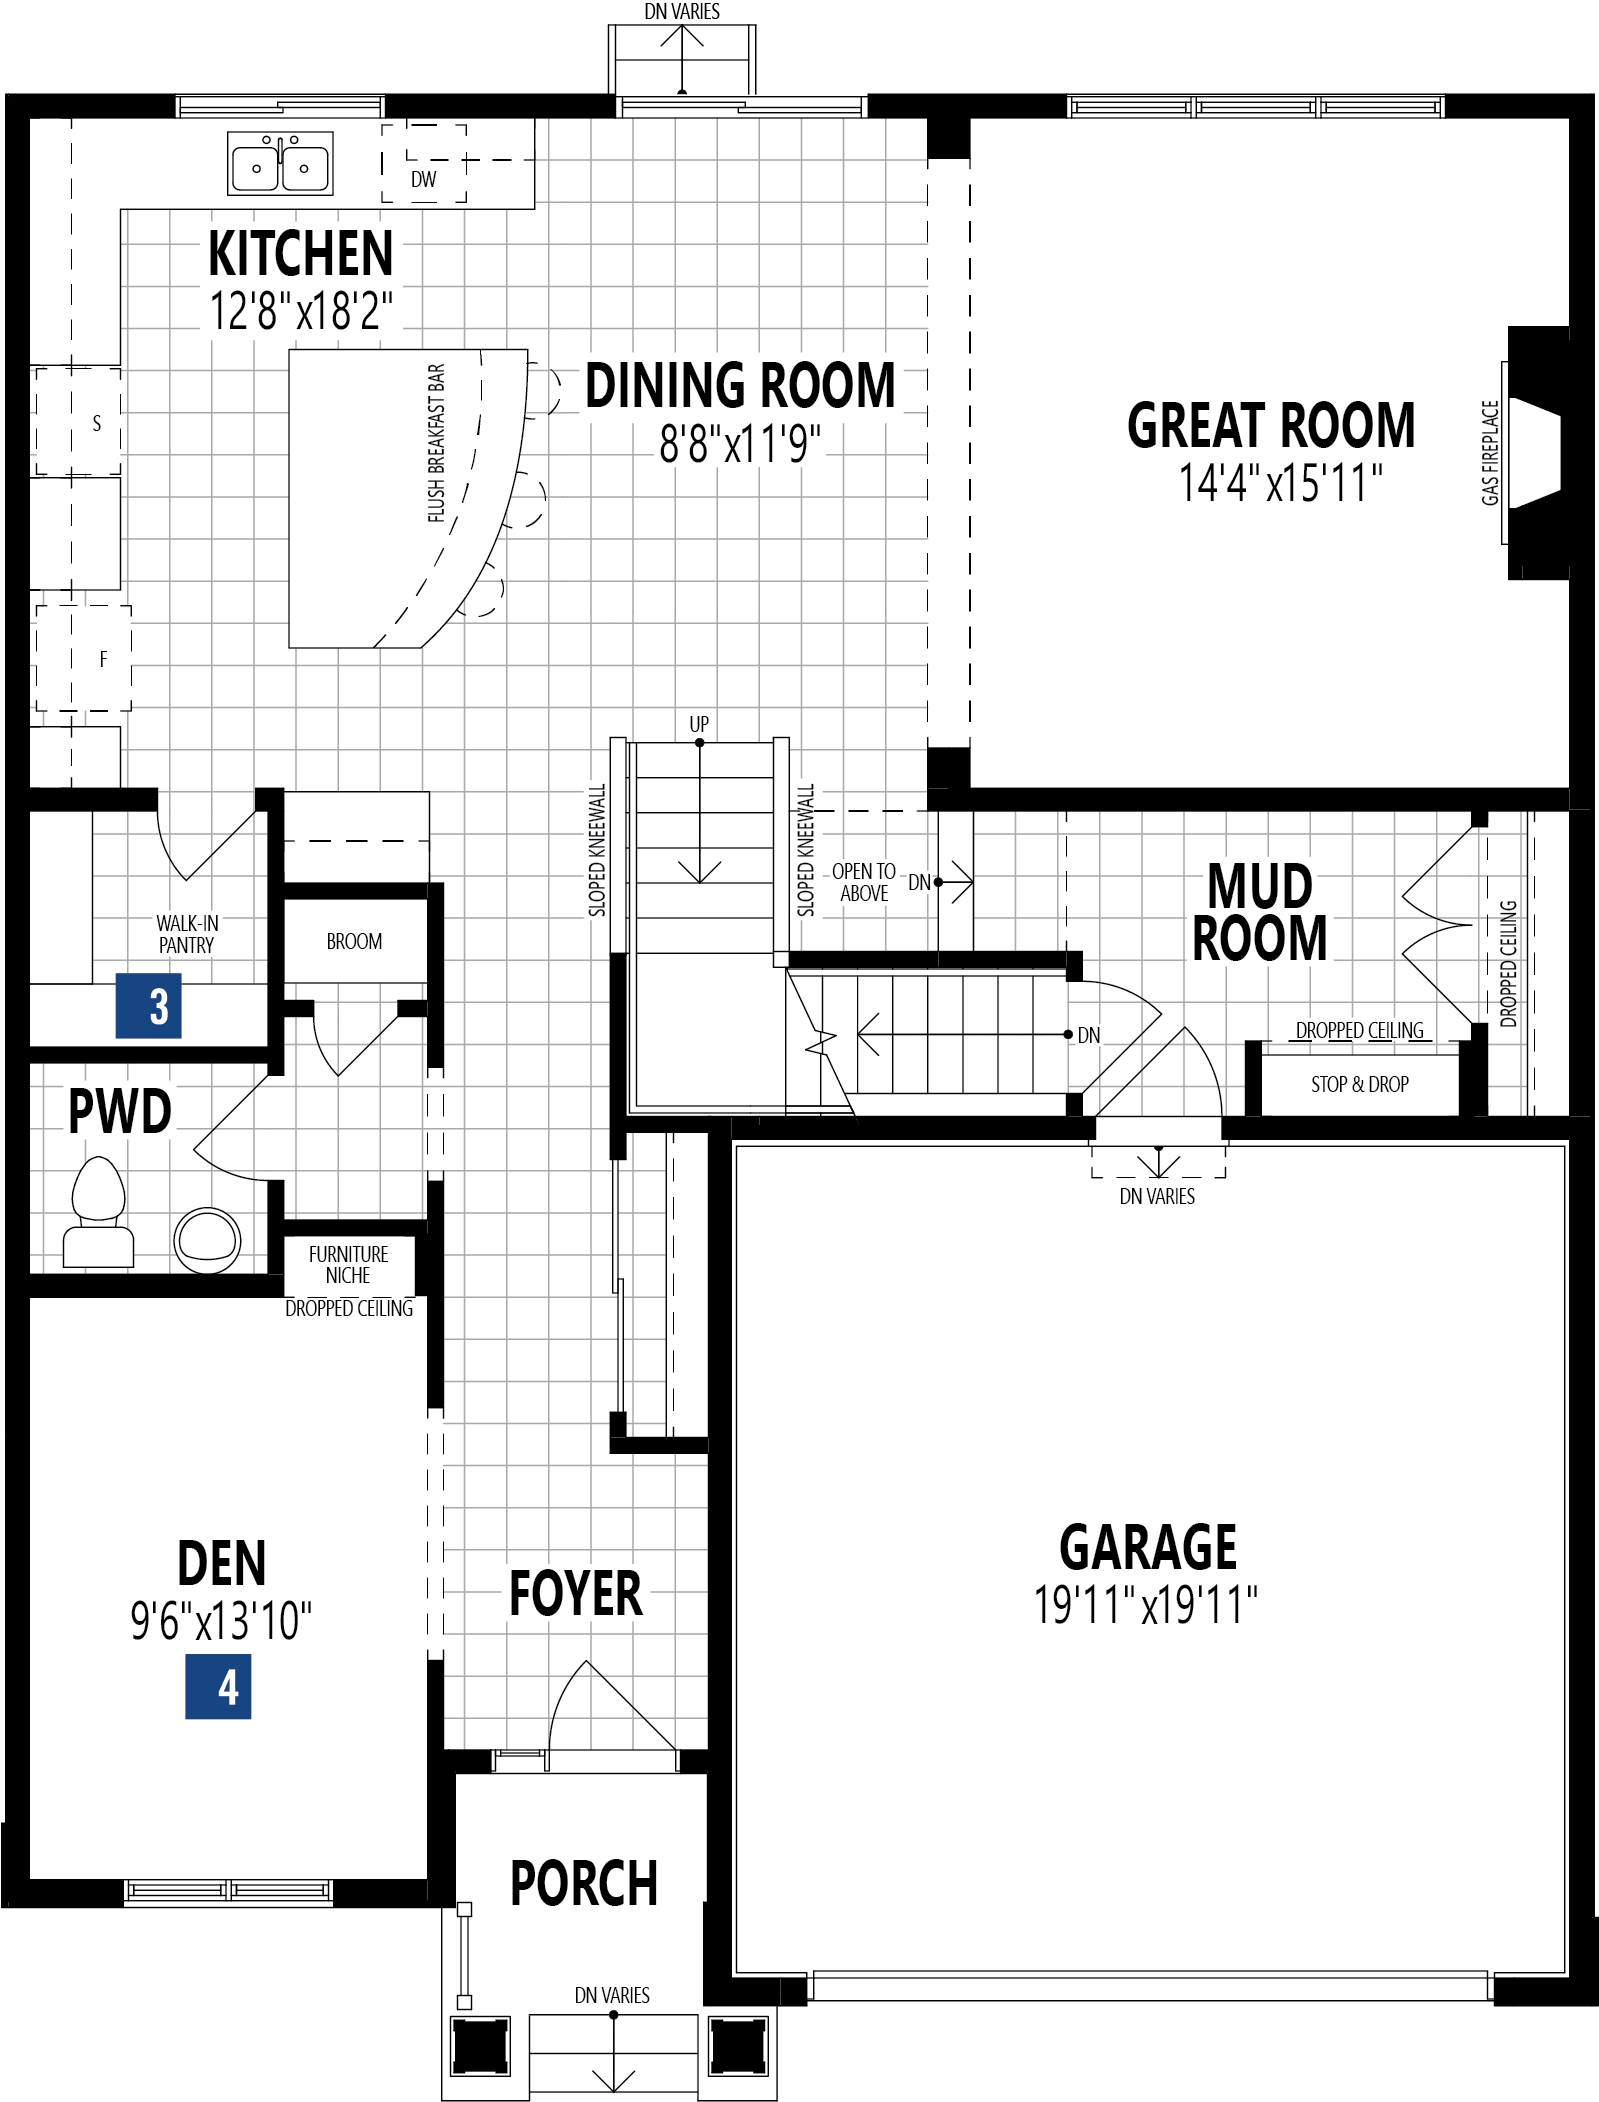 Cline Plan Floor Plan at Stillwater in Edmonton Alberta by Mattamy Homes